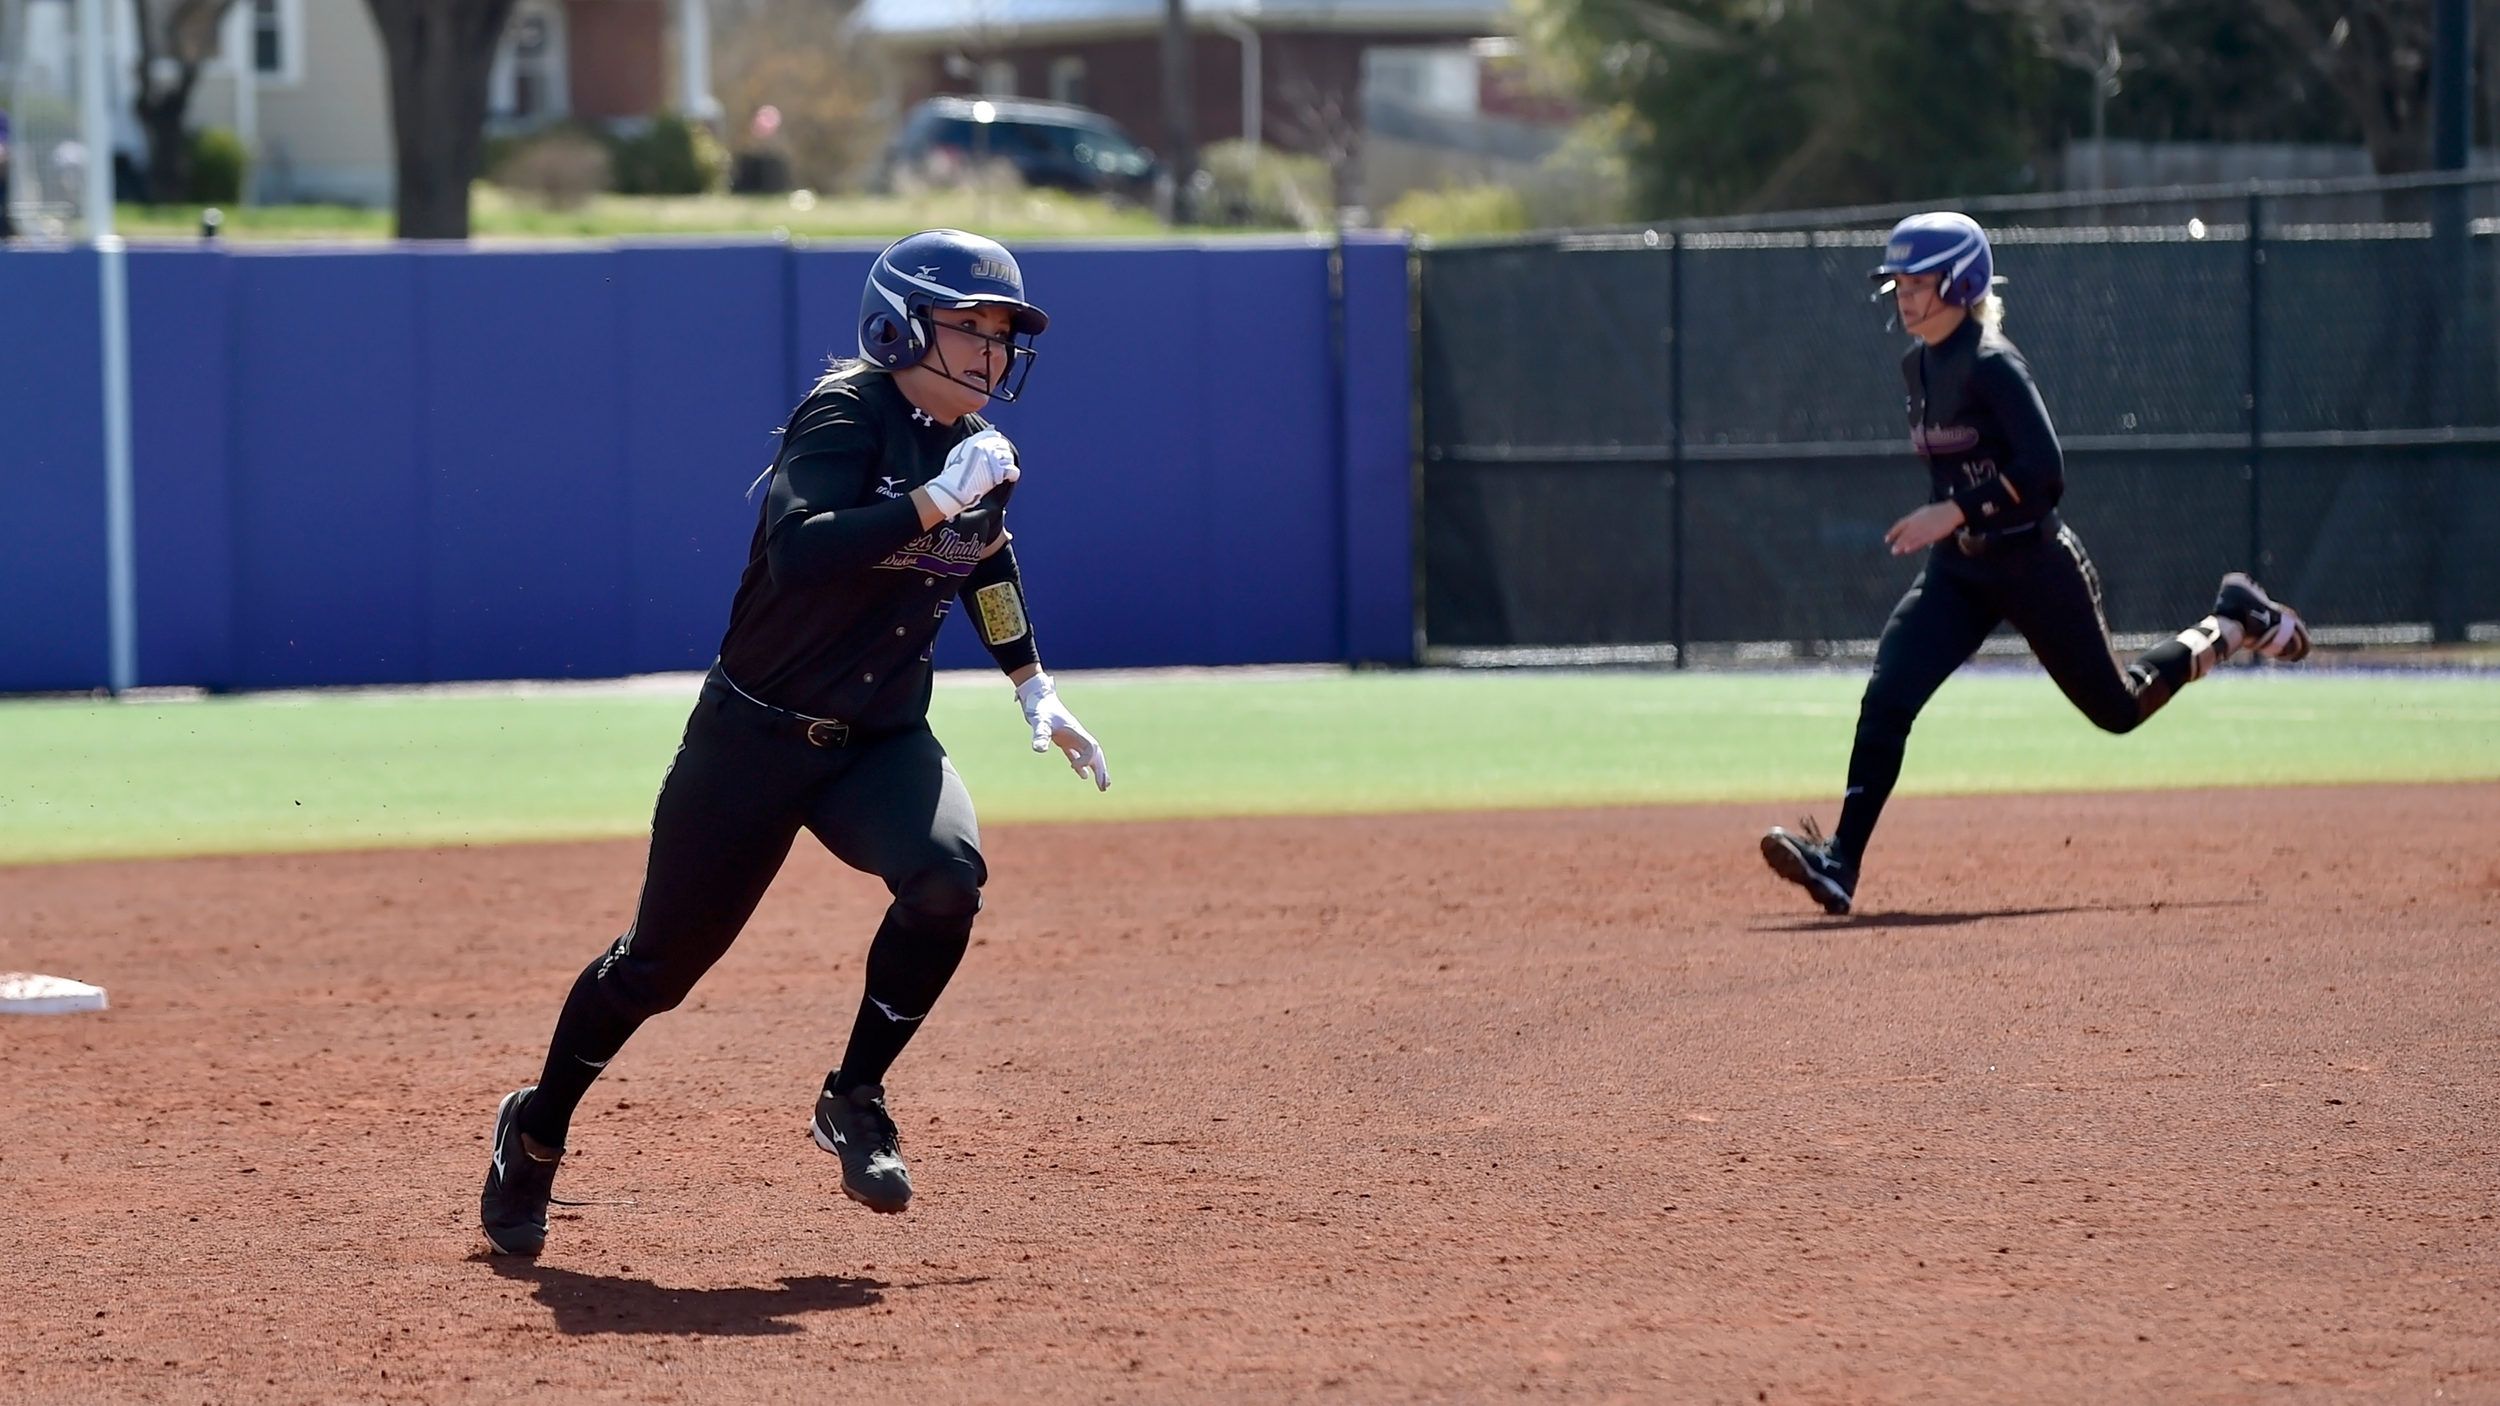 Softball: Dukes Win Opening Series Over Elon